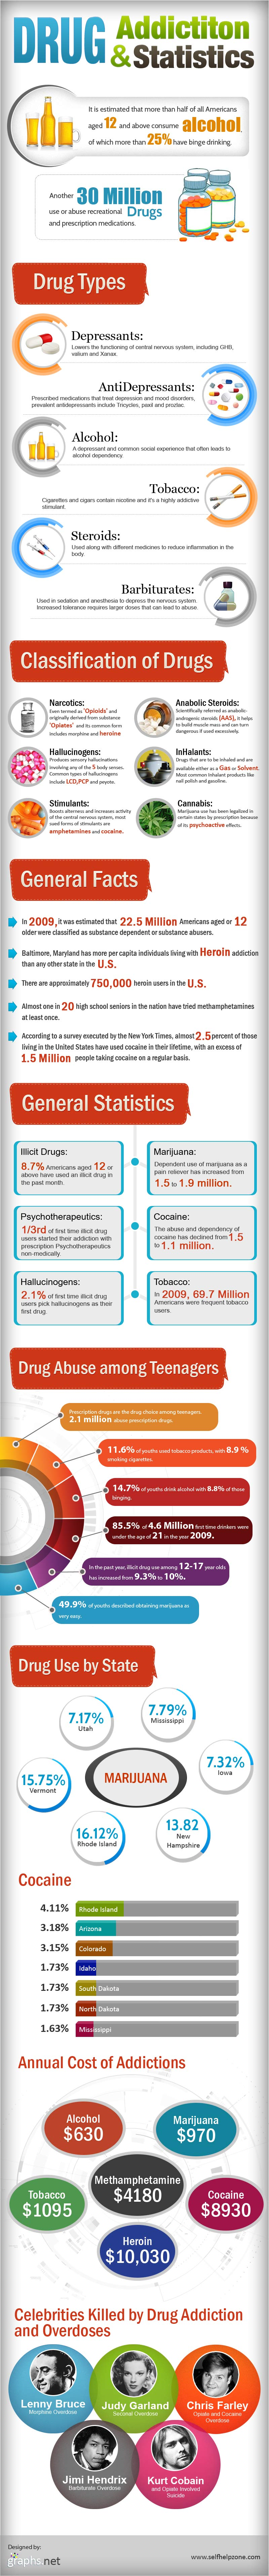 Drugs in the US-Infographic